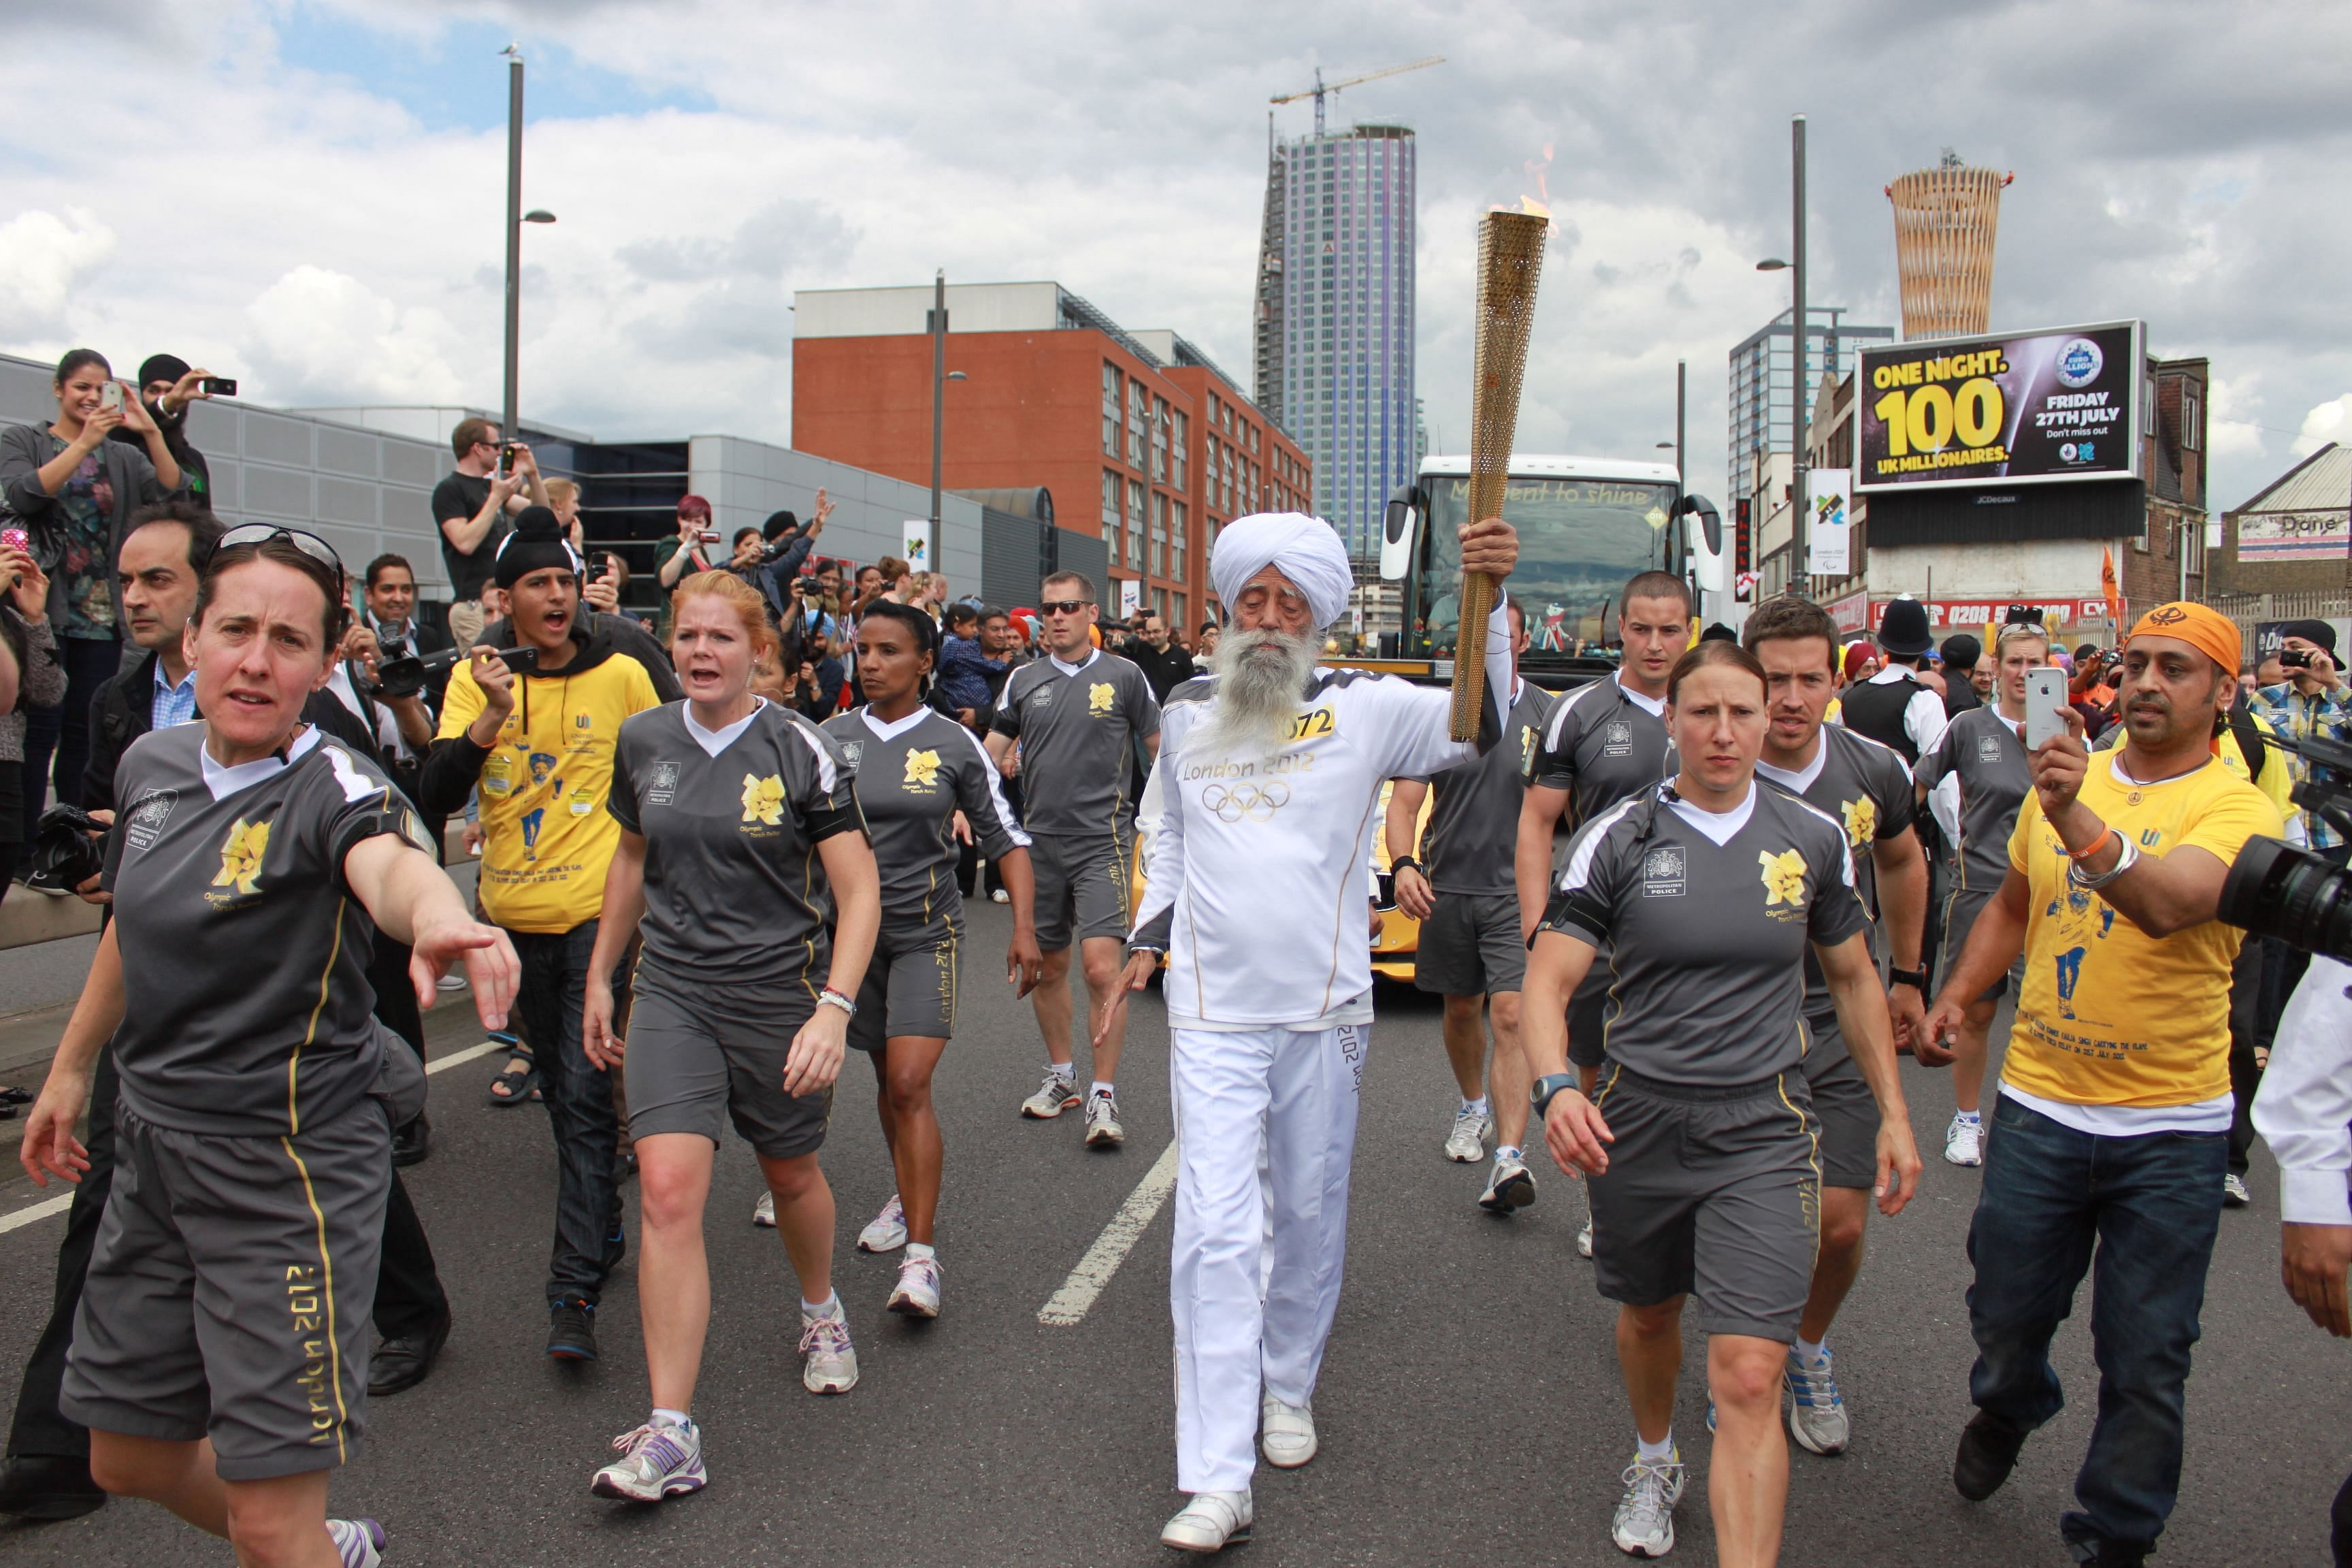 Fauja Singh running with the Olympic torch at the 2012 London Olympics